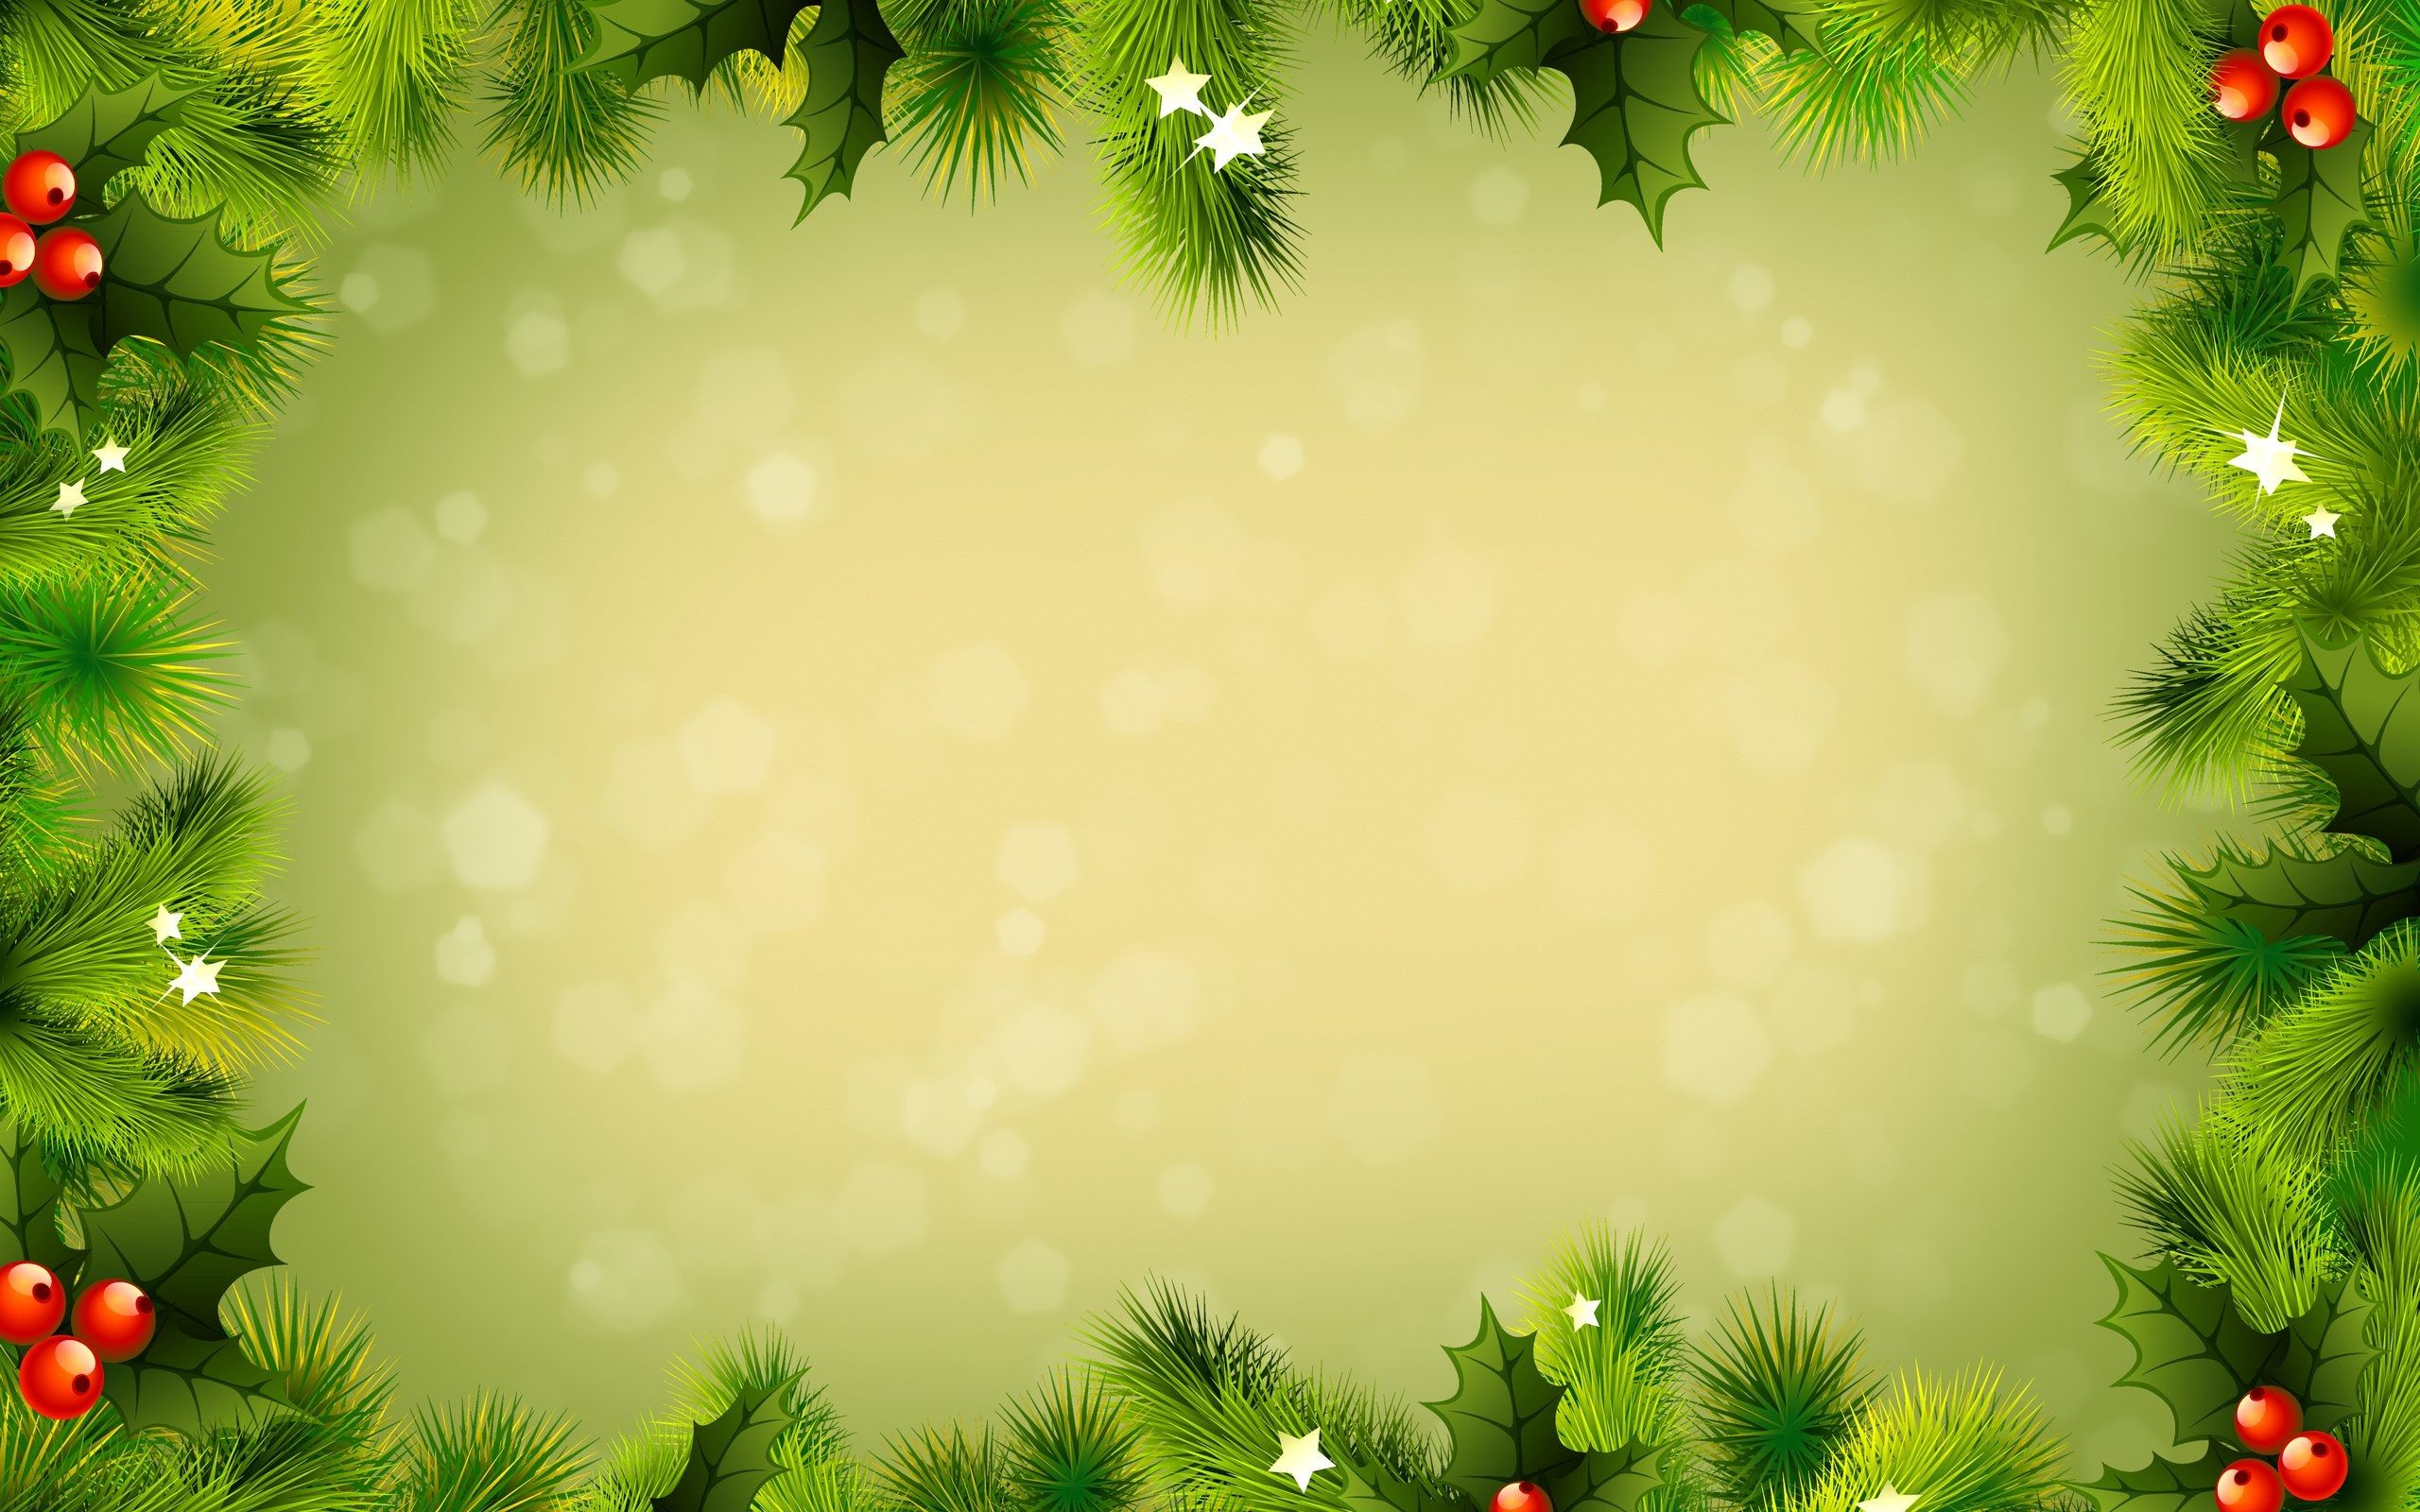 christmas background - free large images | graphic design